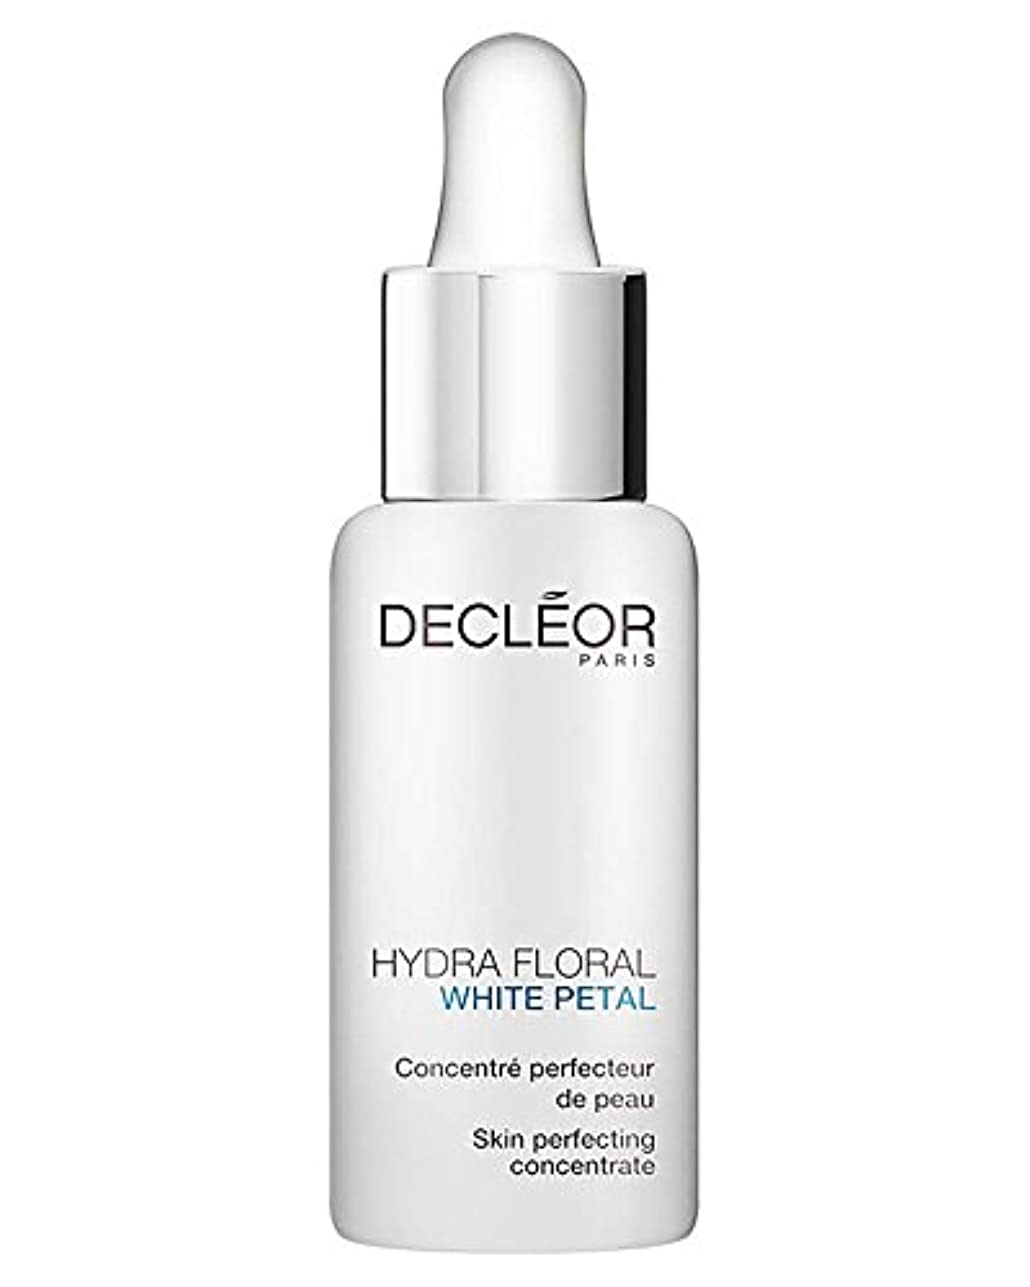 キッチン思いつくミルクデクレオール Hydra Floral White Petal Neroli & Sweet Orange Skin Perfecting Concentrate 30ml/1oz並行輸入品